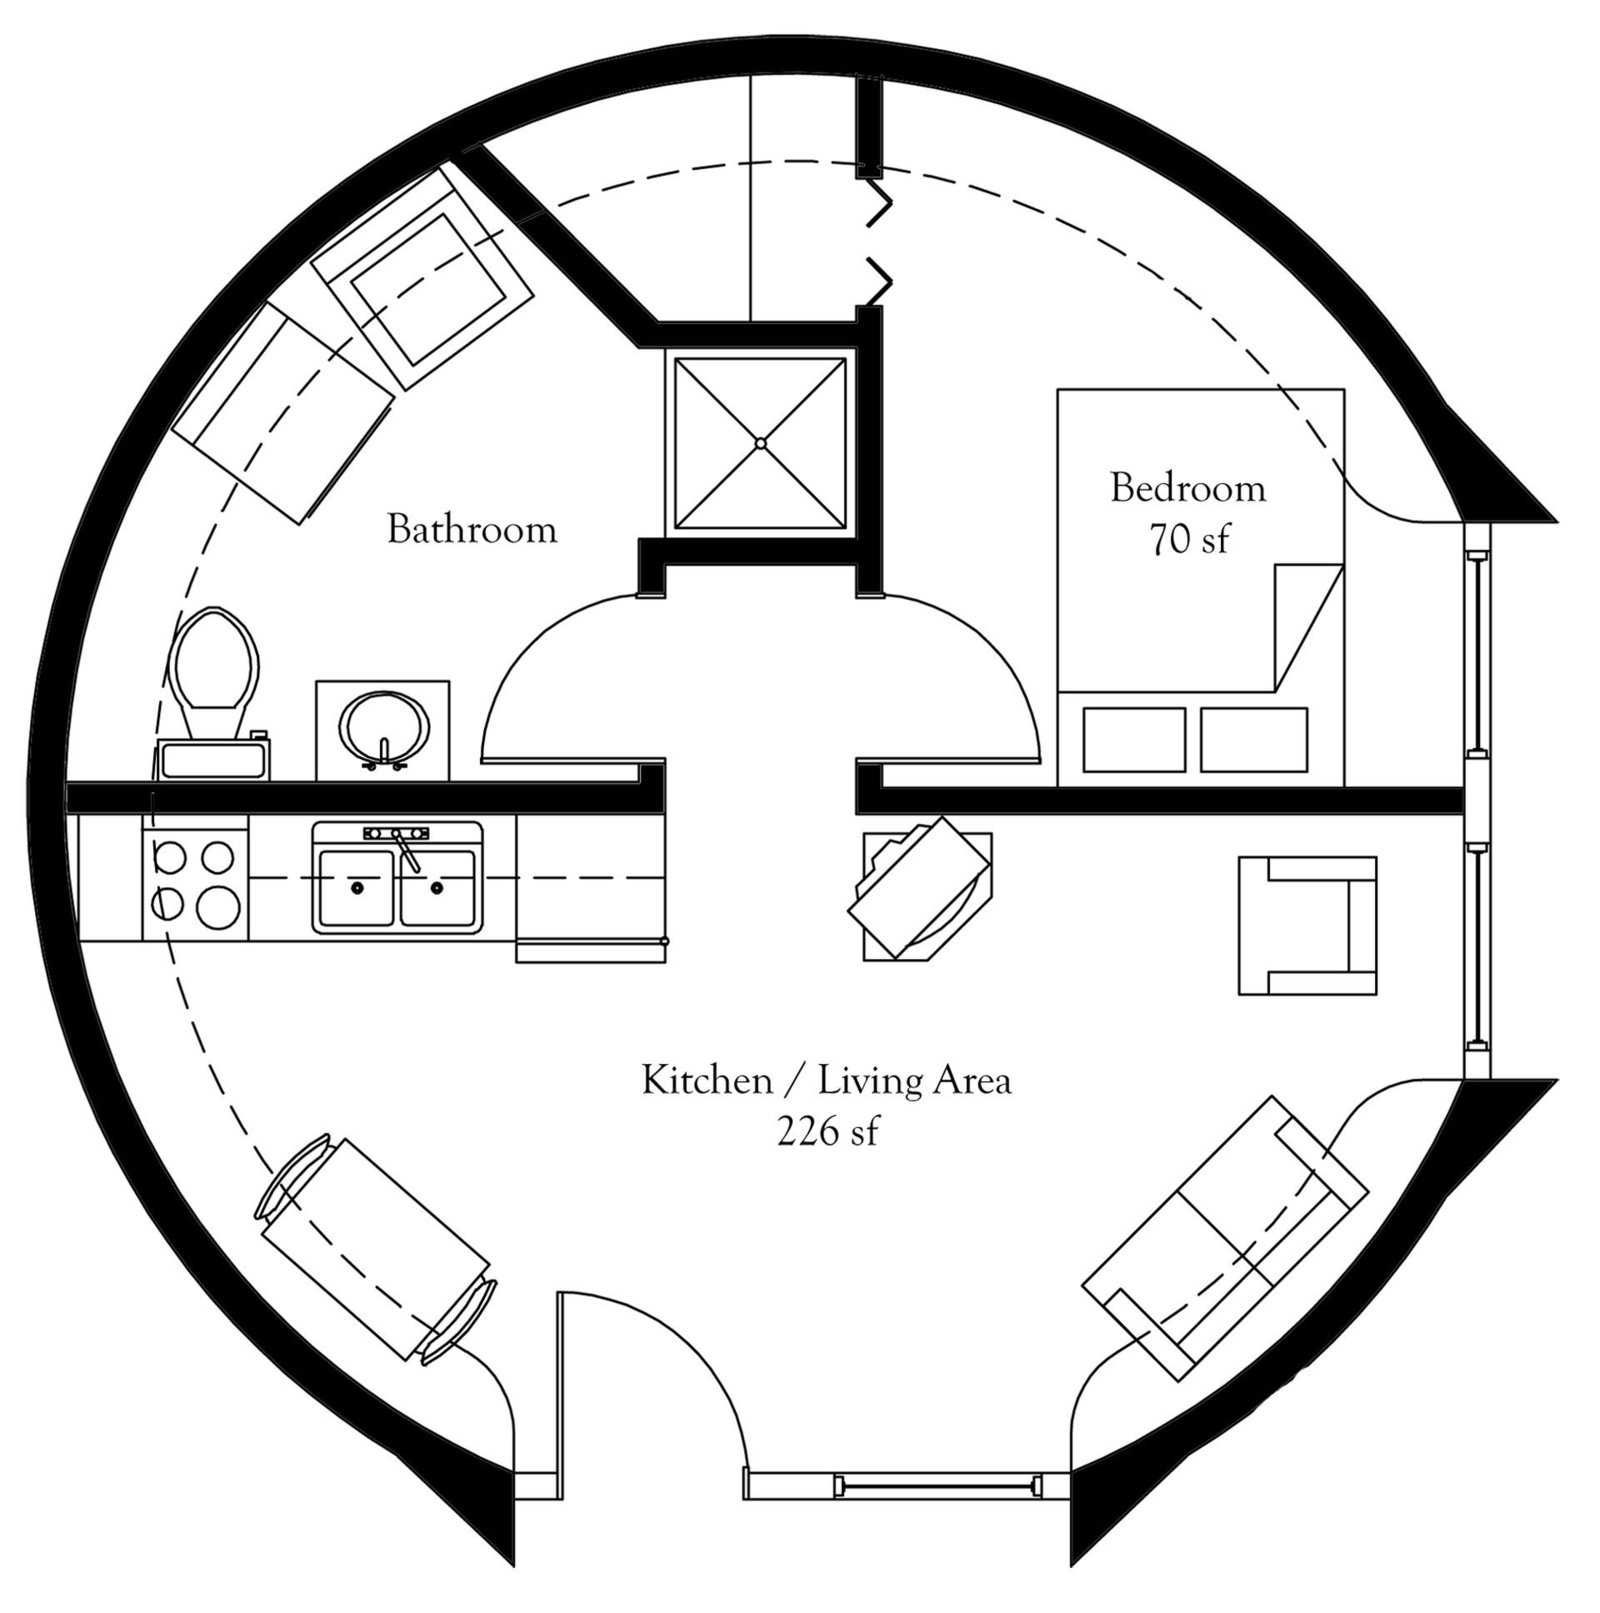 Plan Number Dl Floor Area 452 Square Feet Diameter